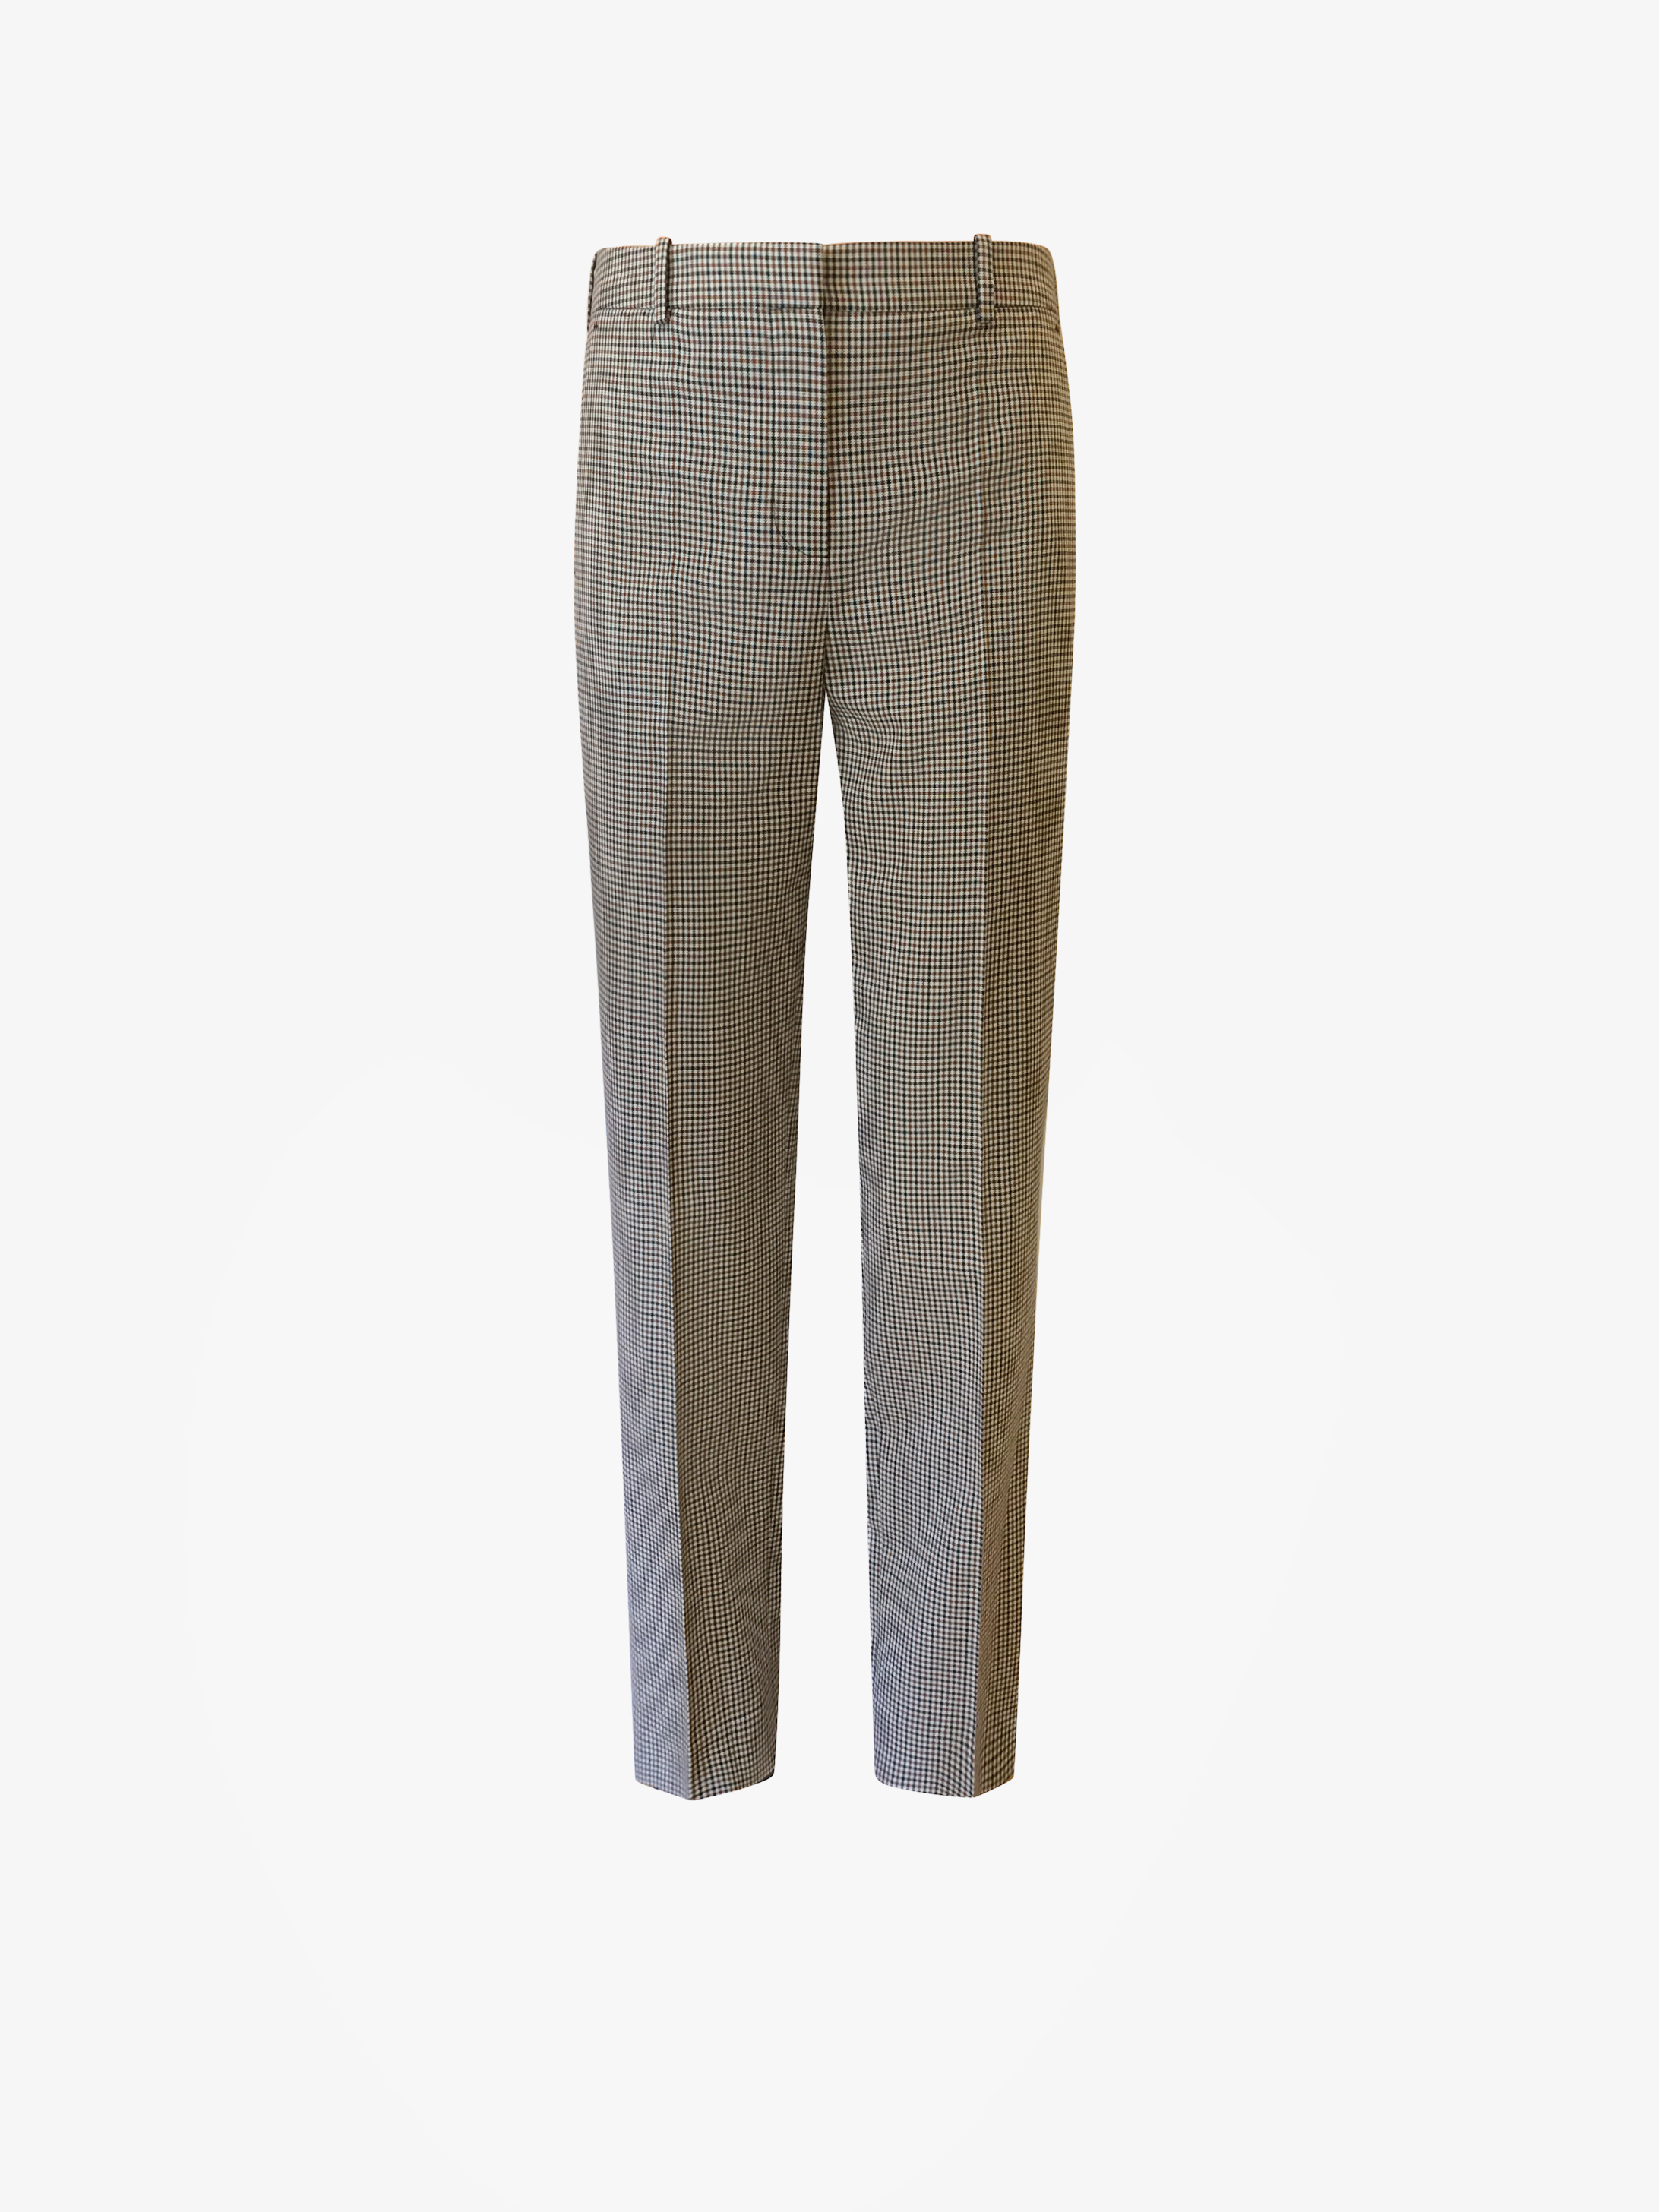 Cigarette trousers with micro check tailorin